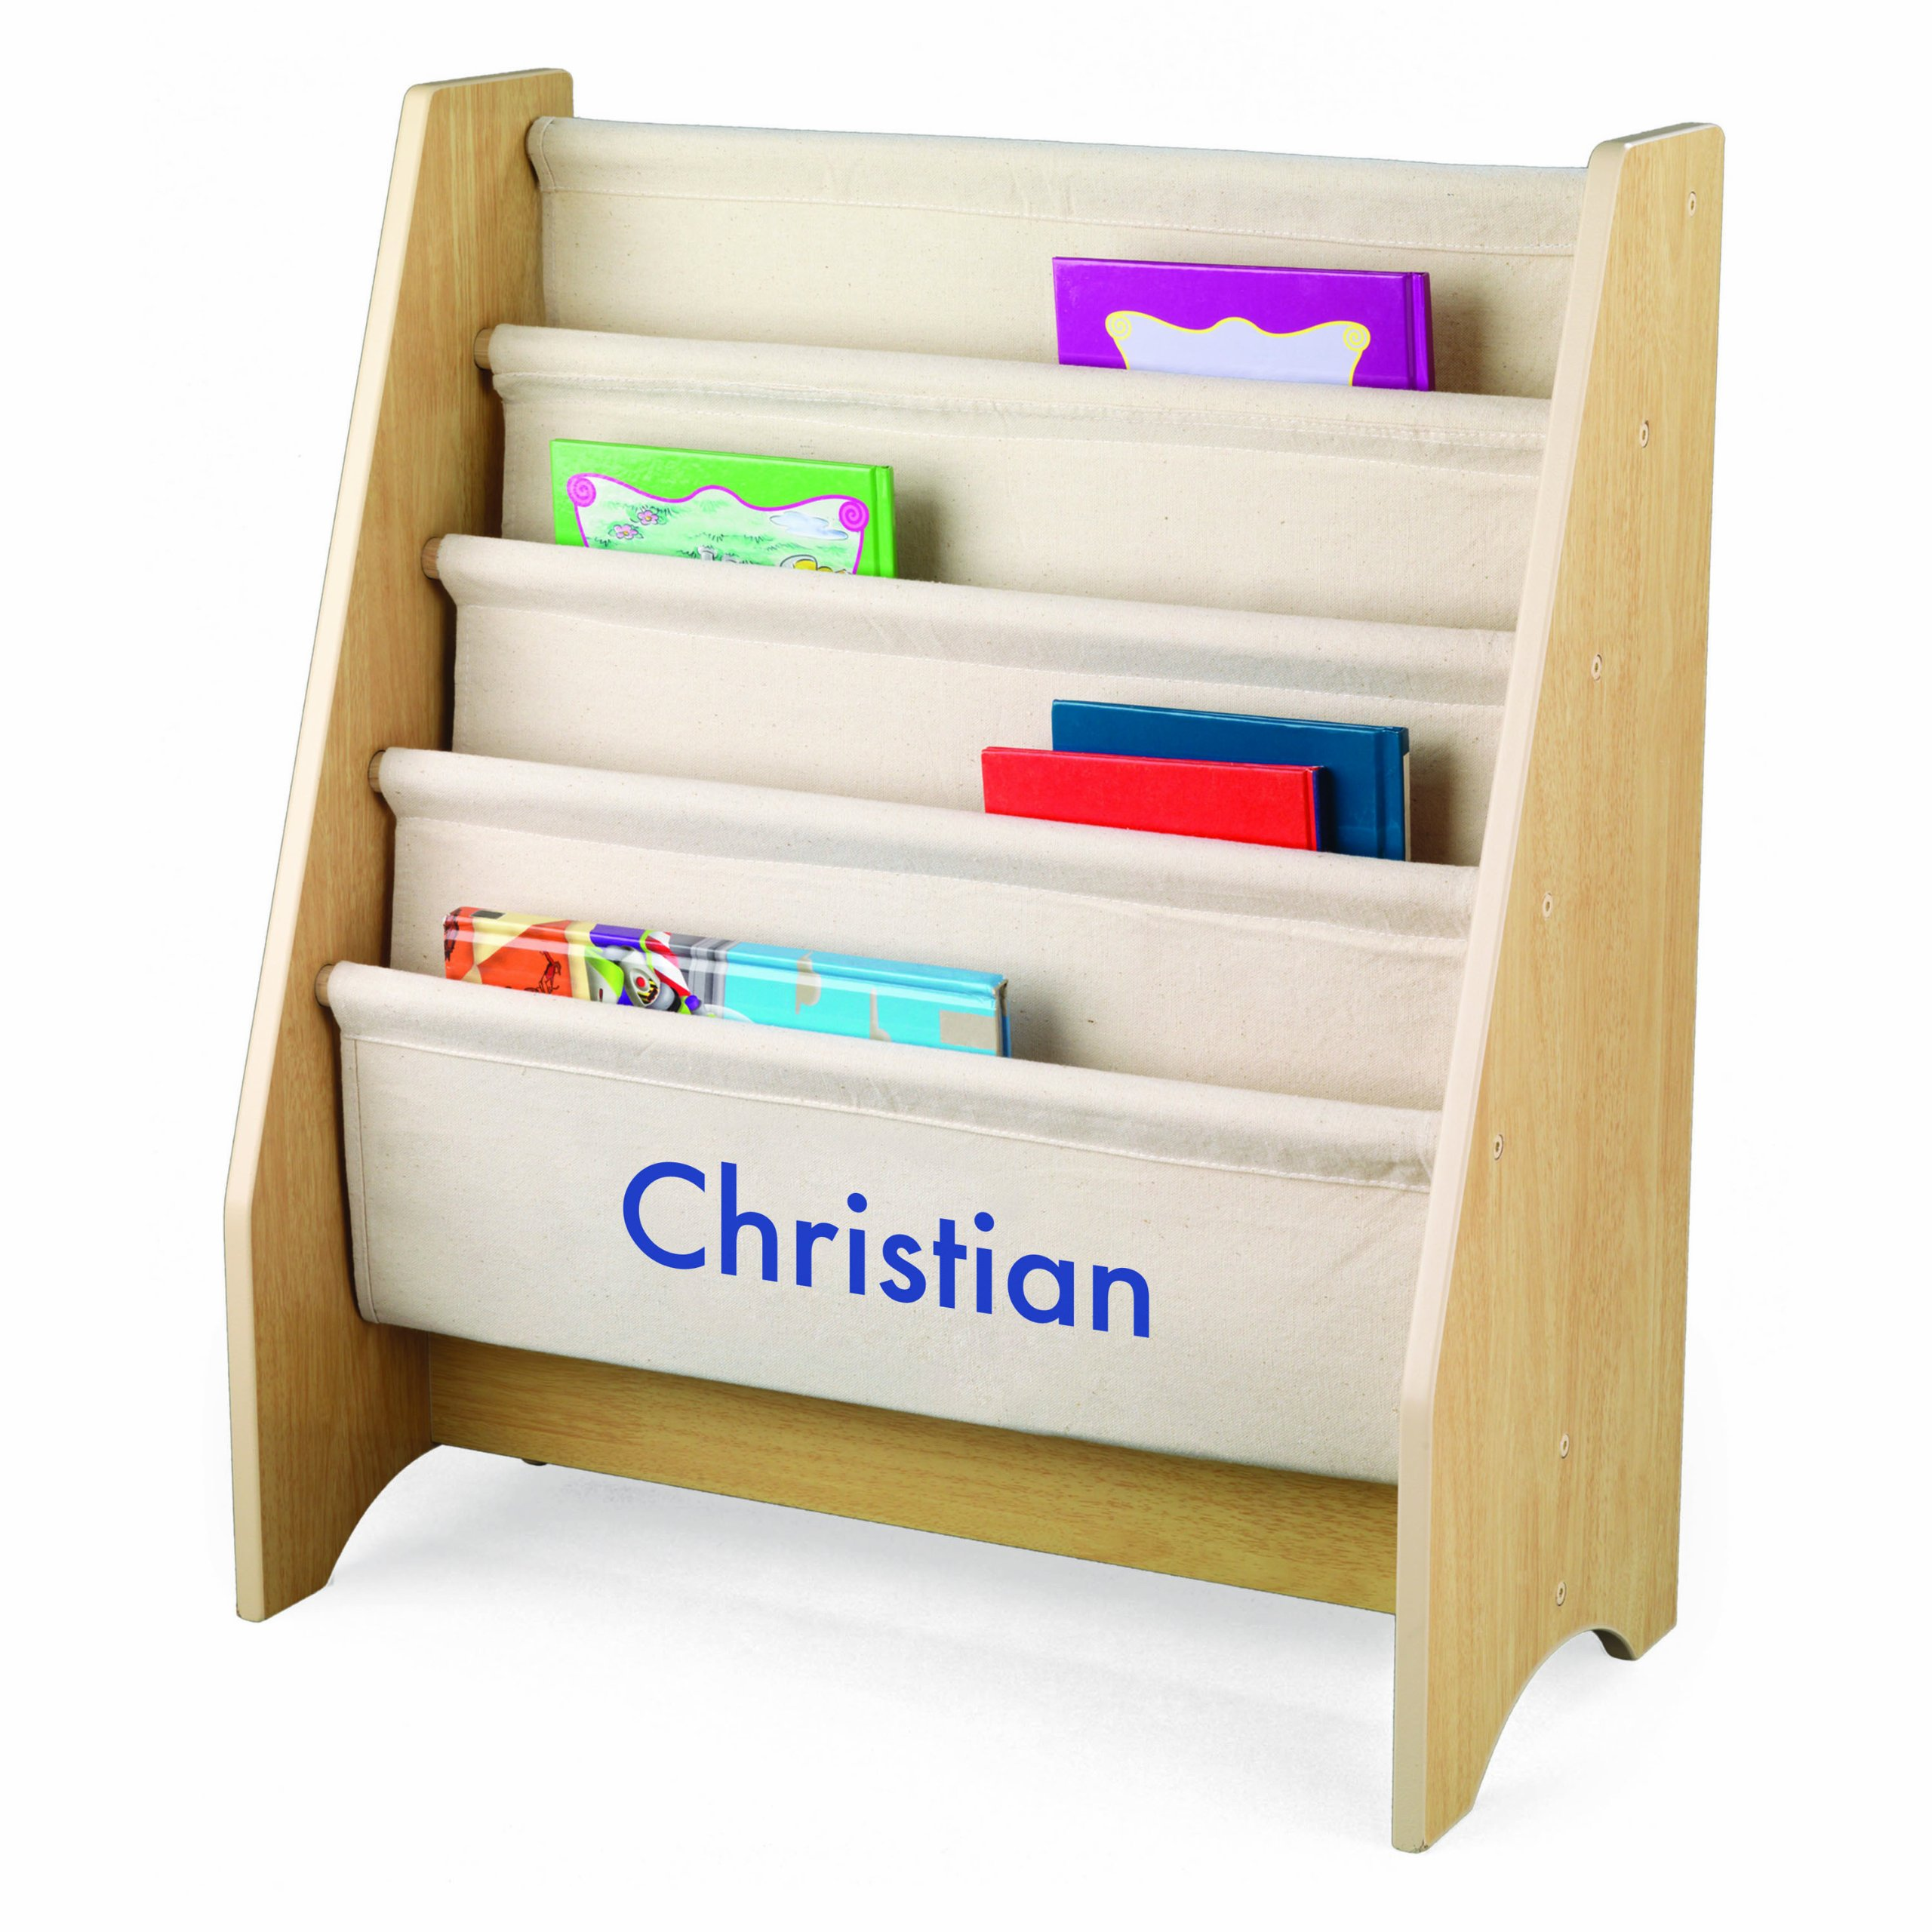 KidKraft Personalized Natural Sling Bookshelf with Blue Block - Christian by KidKraft